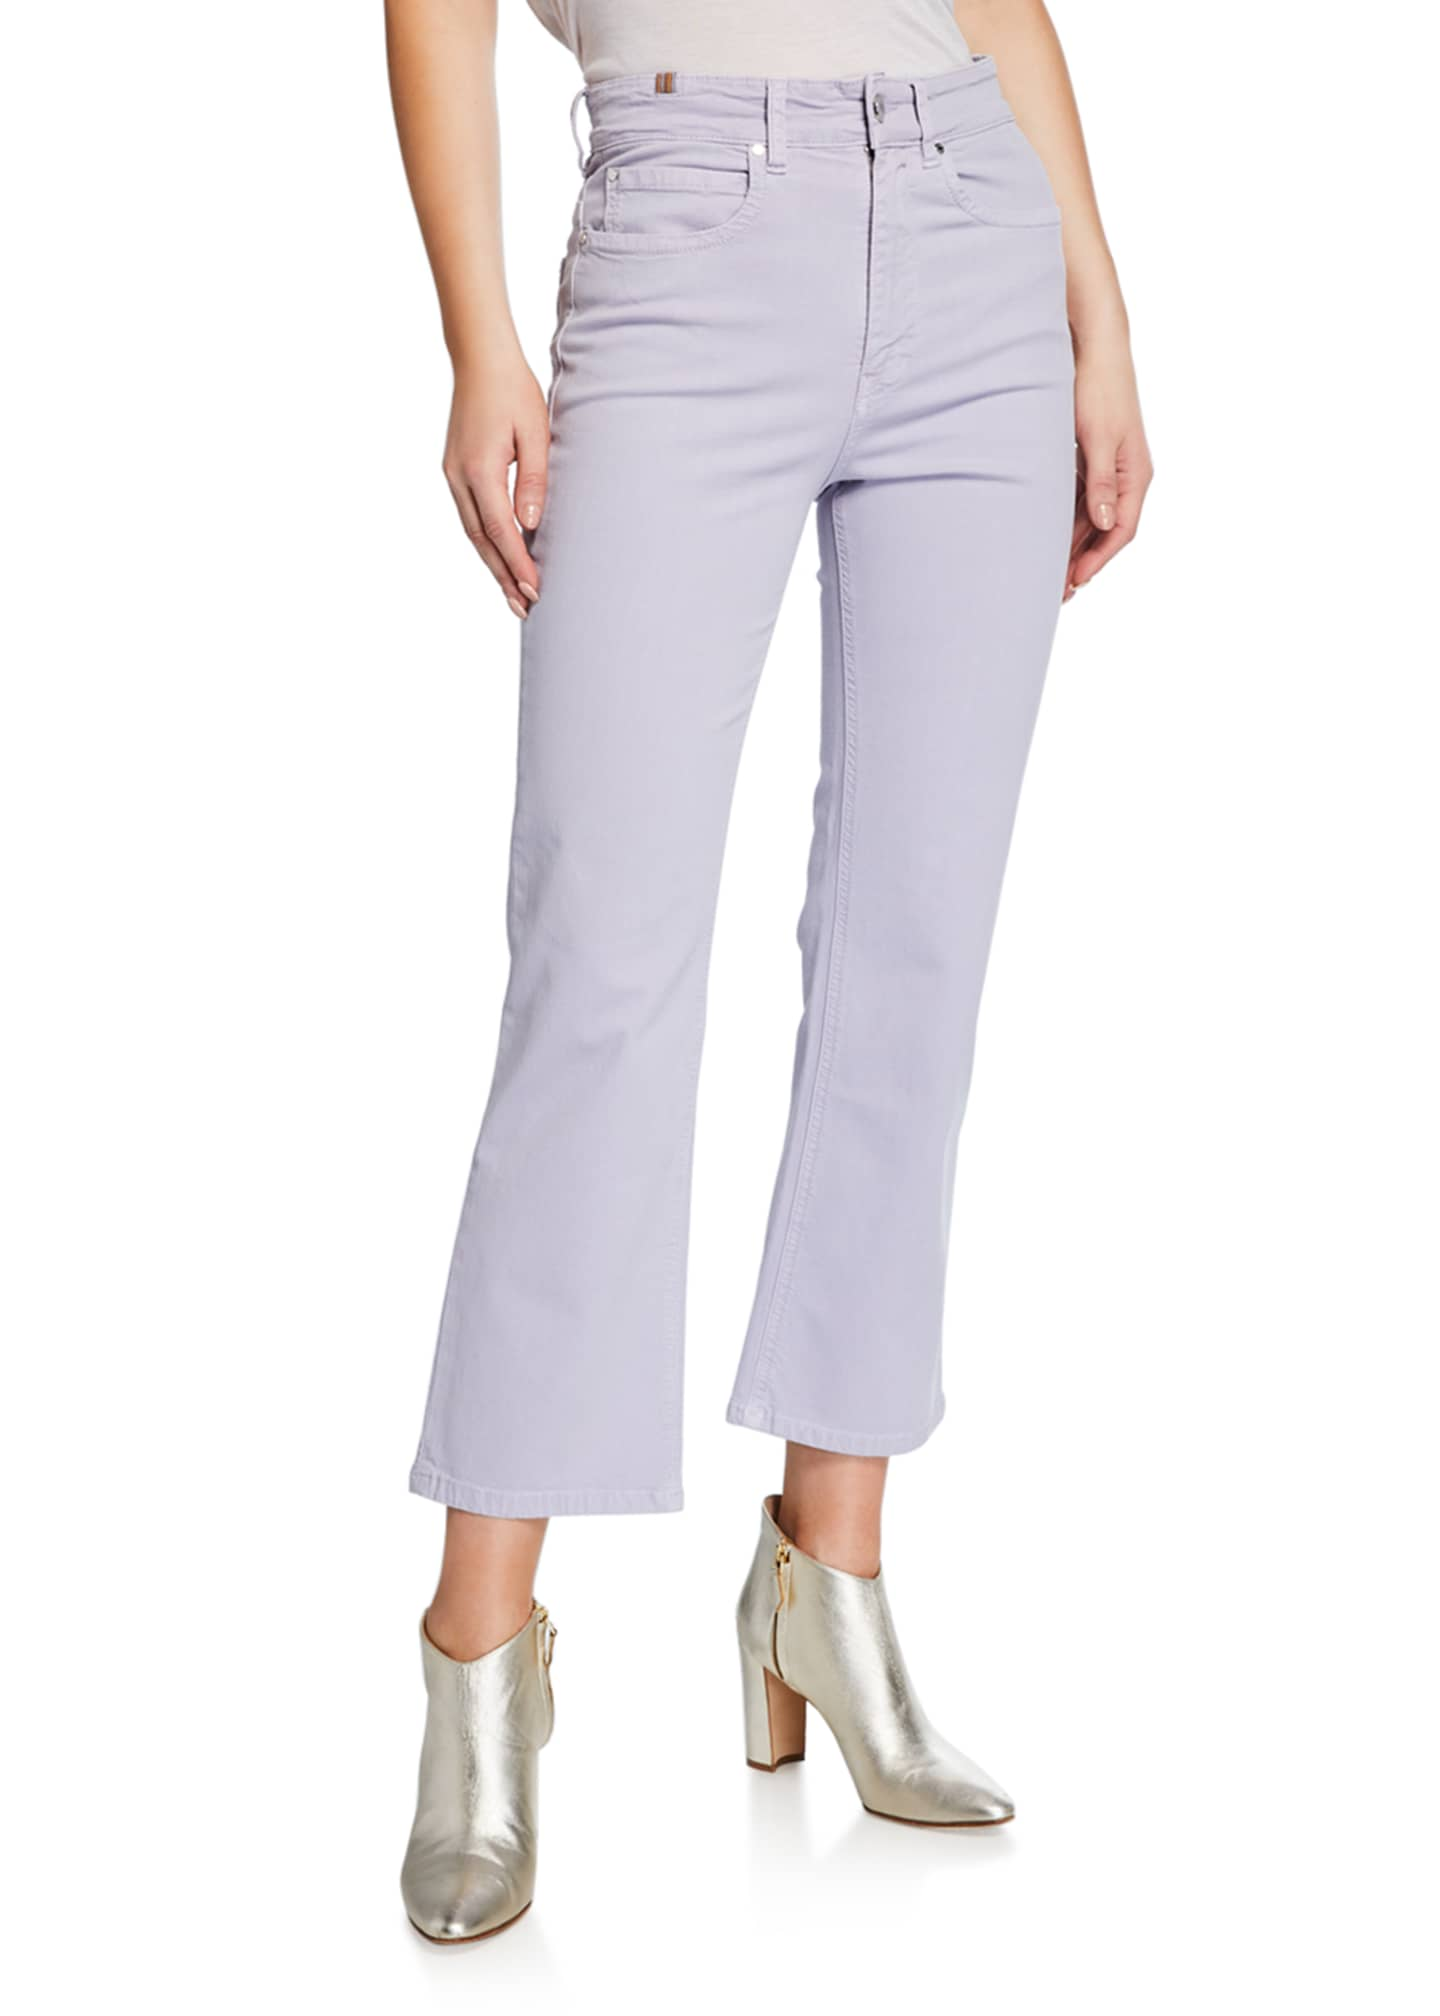 Atelier Notify High-Rise Capri Boot-Cut Jeans